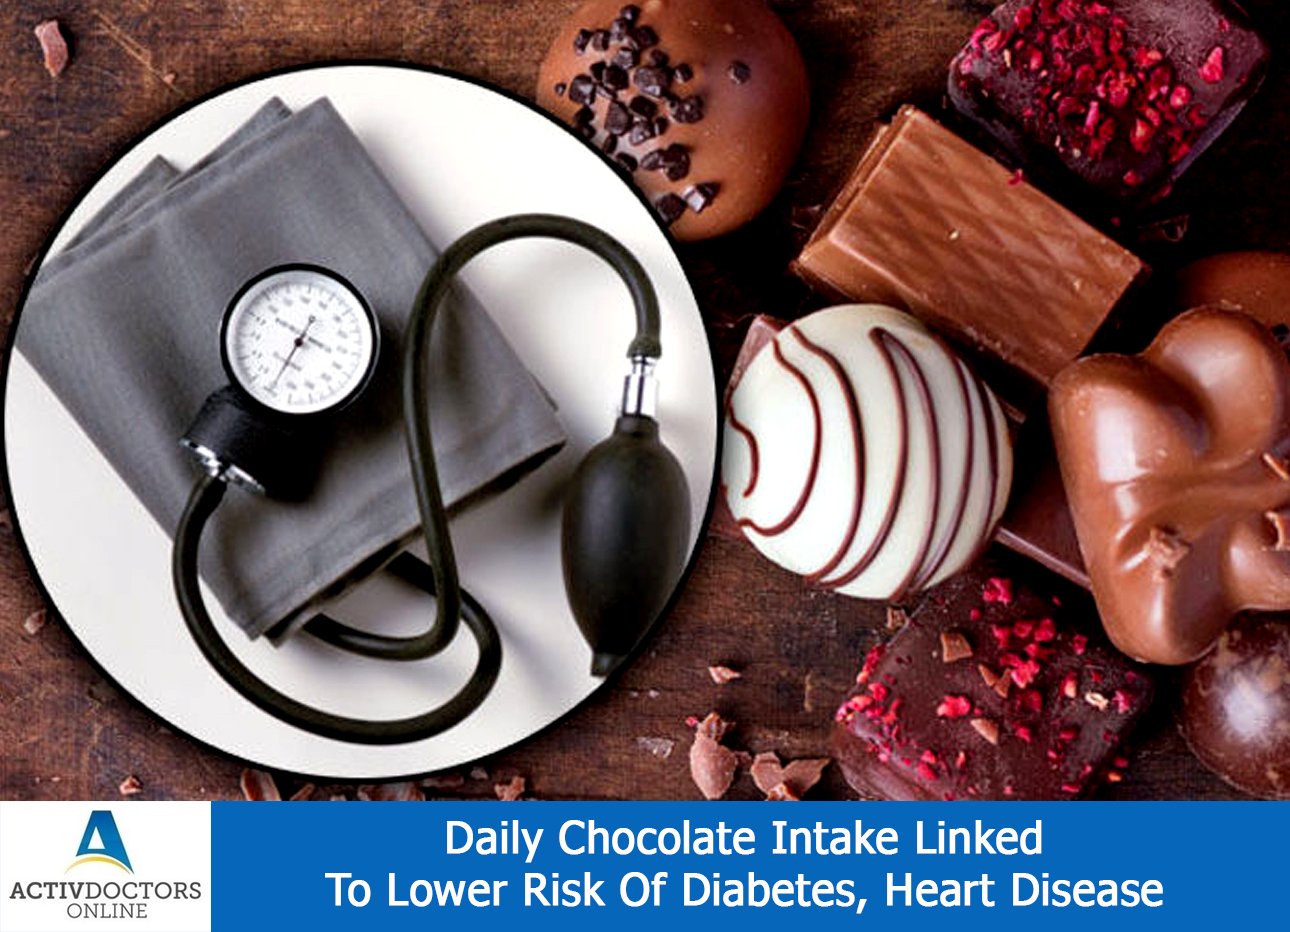 Daily Chocolate Intake Linked To Lower Risk Of Diabetes, Heart Disease